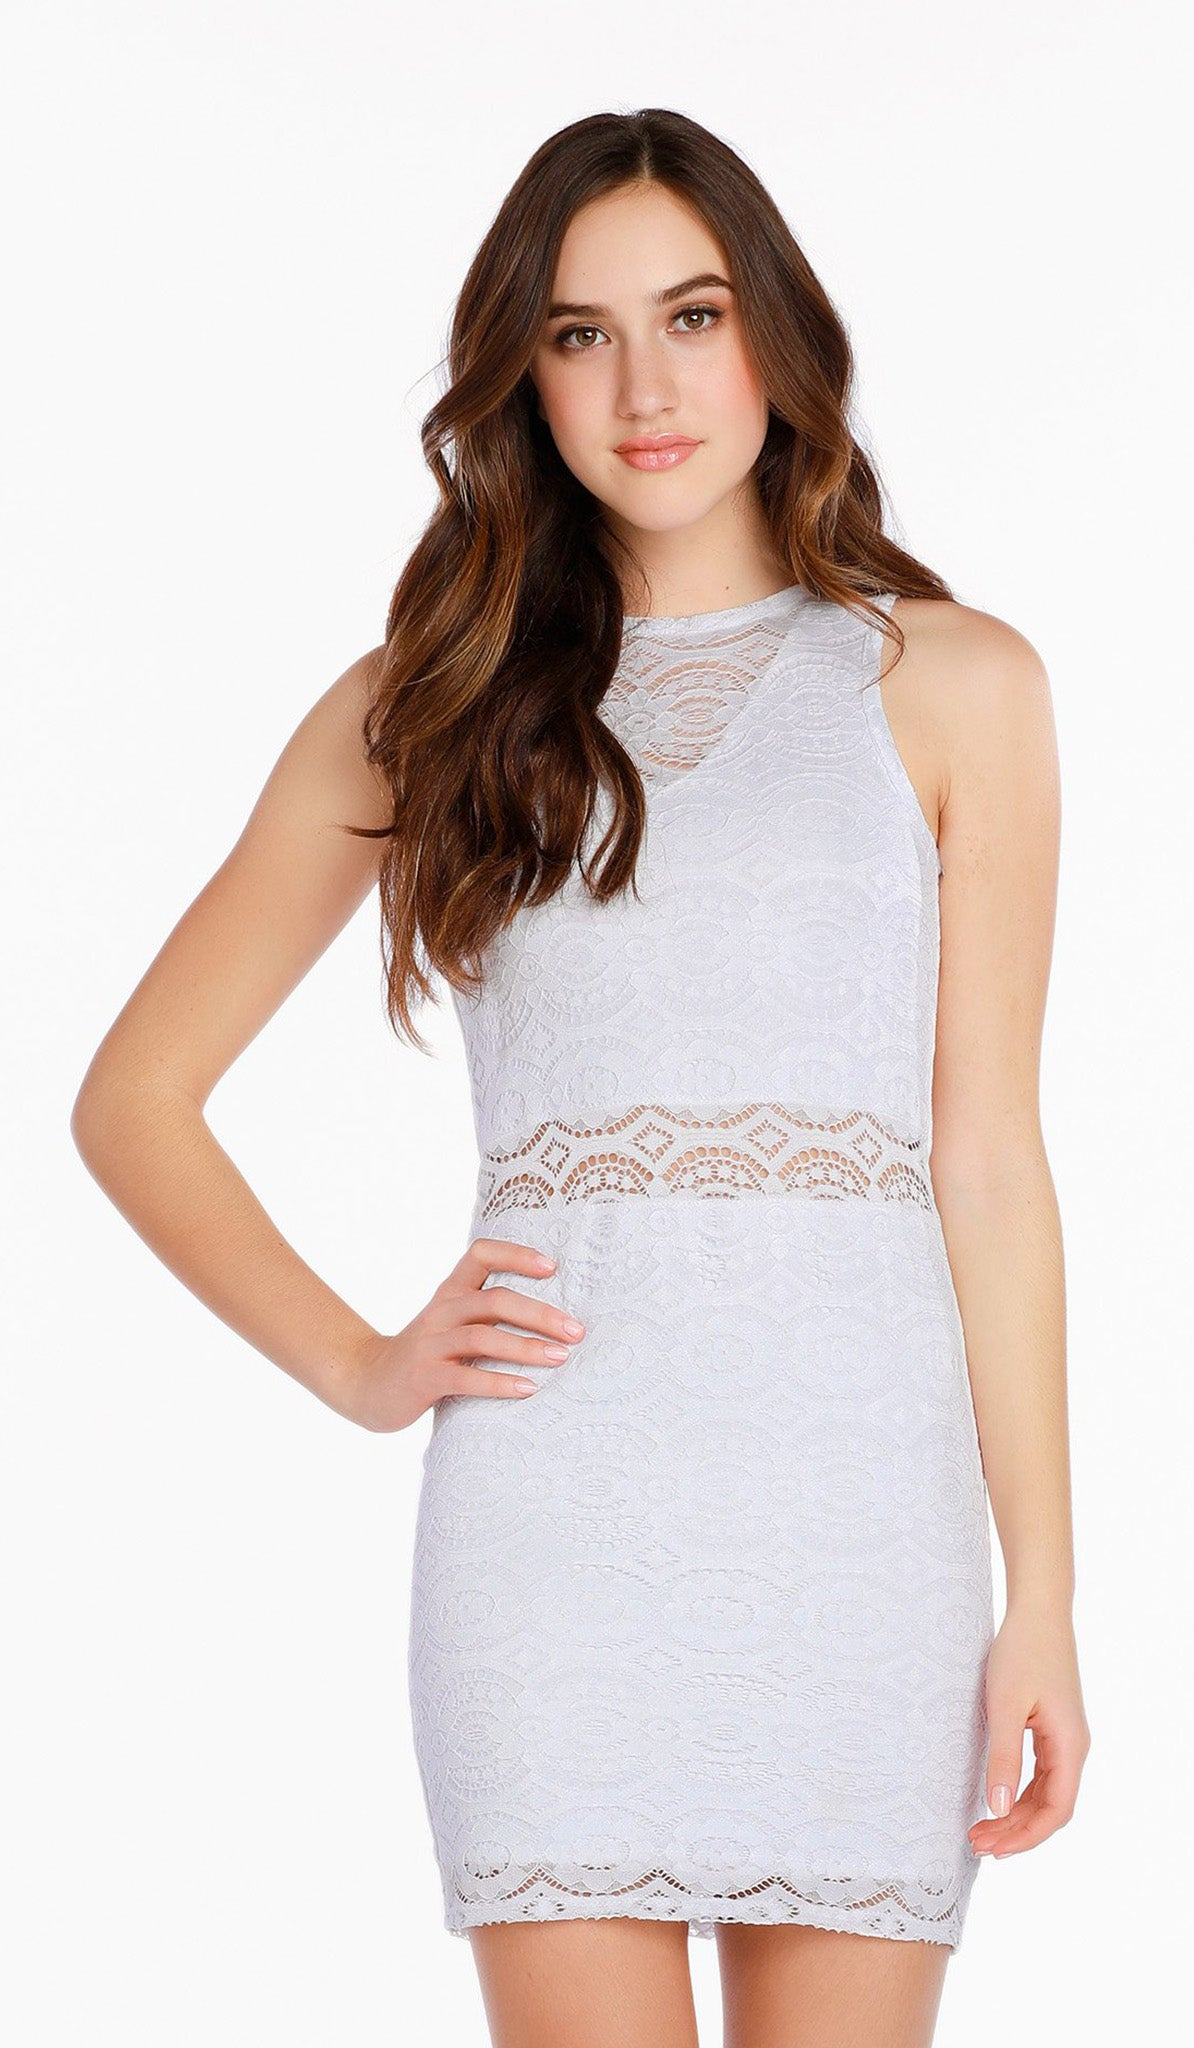 The Sally Miller Adriana Dress Juniors - White stretch crochet lace bodycon dress with illusion waist and yoke